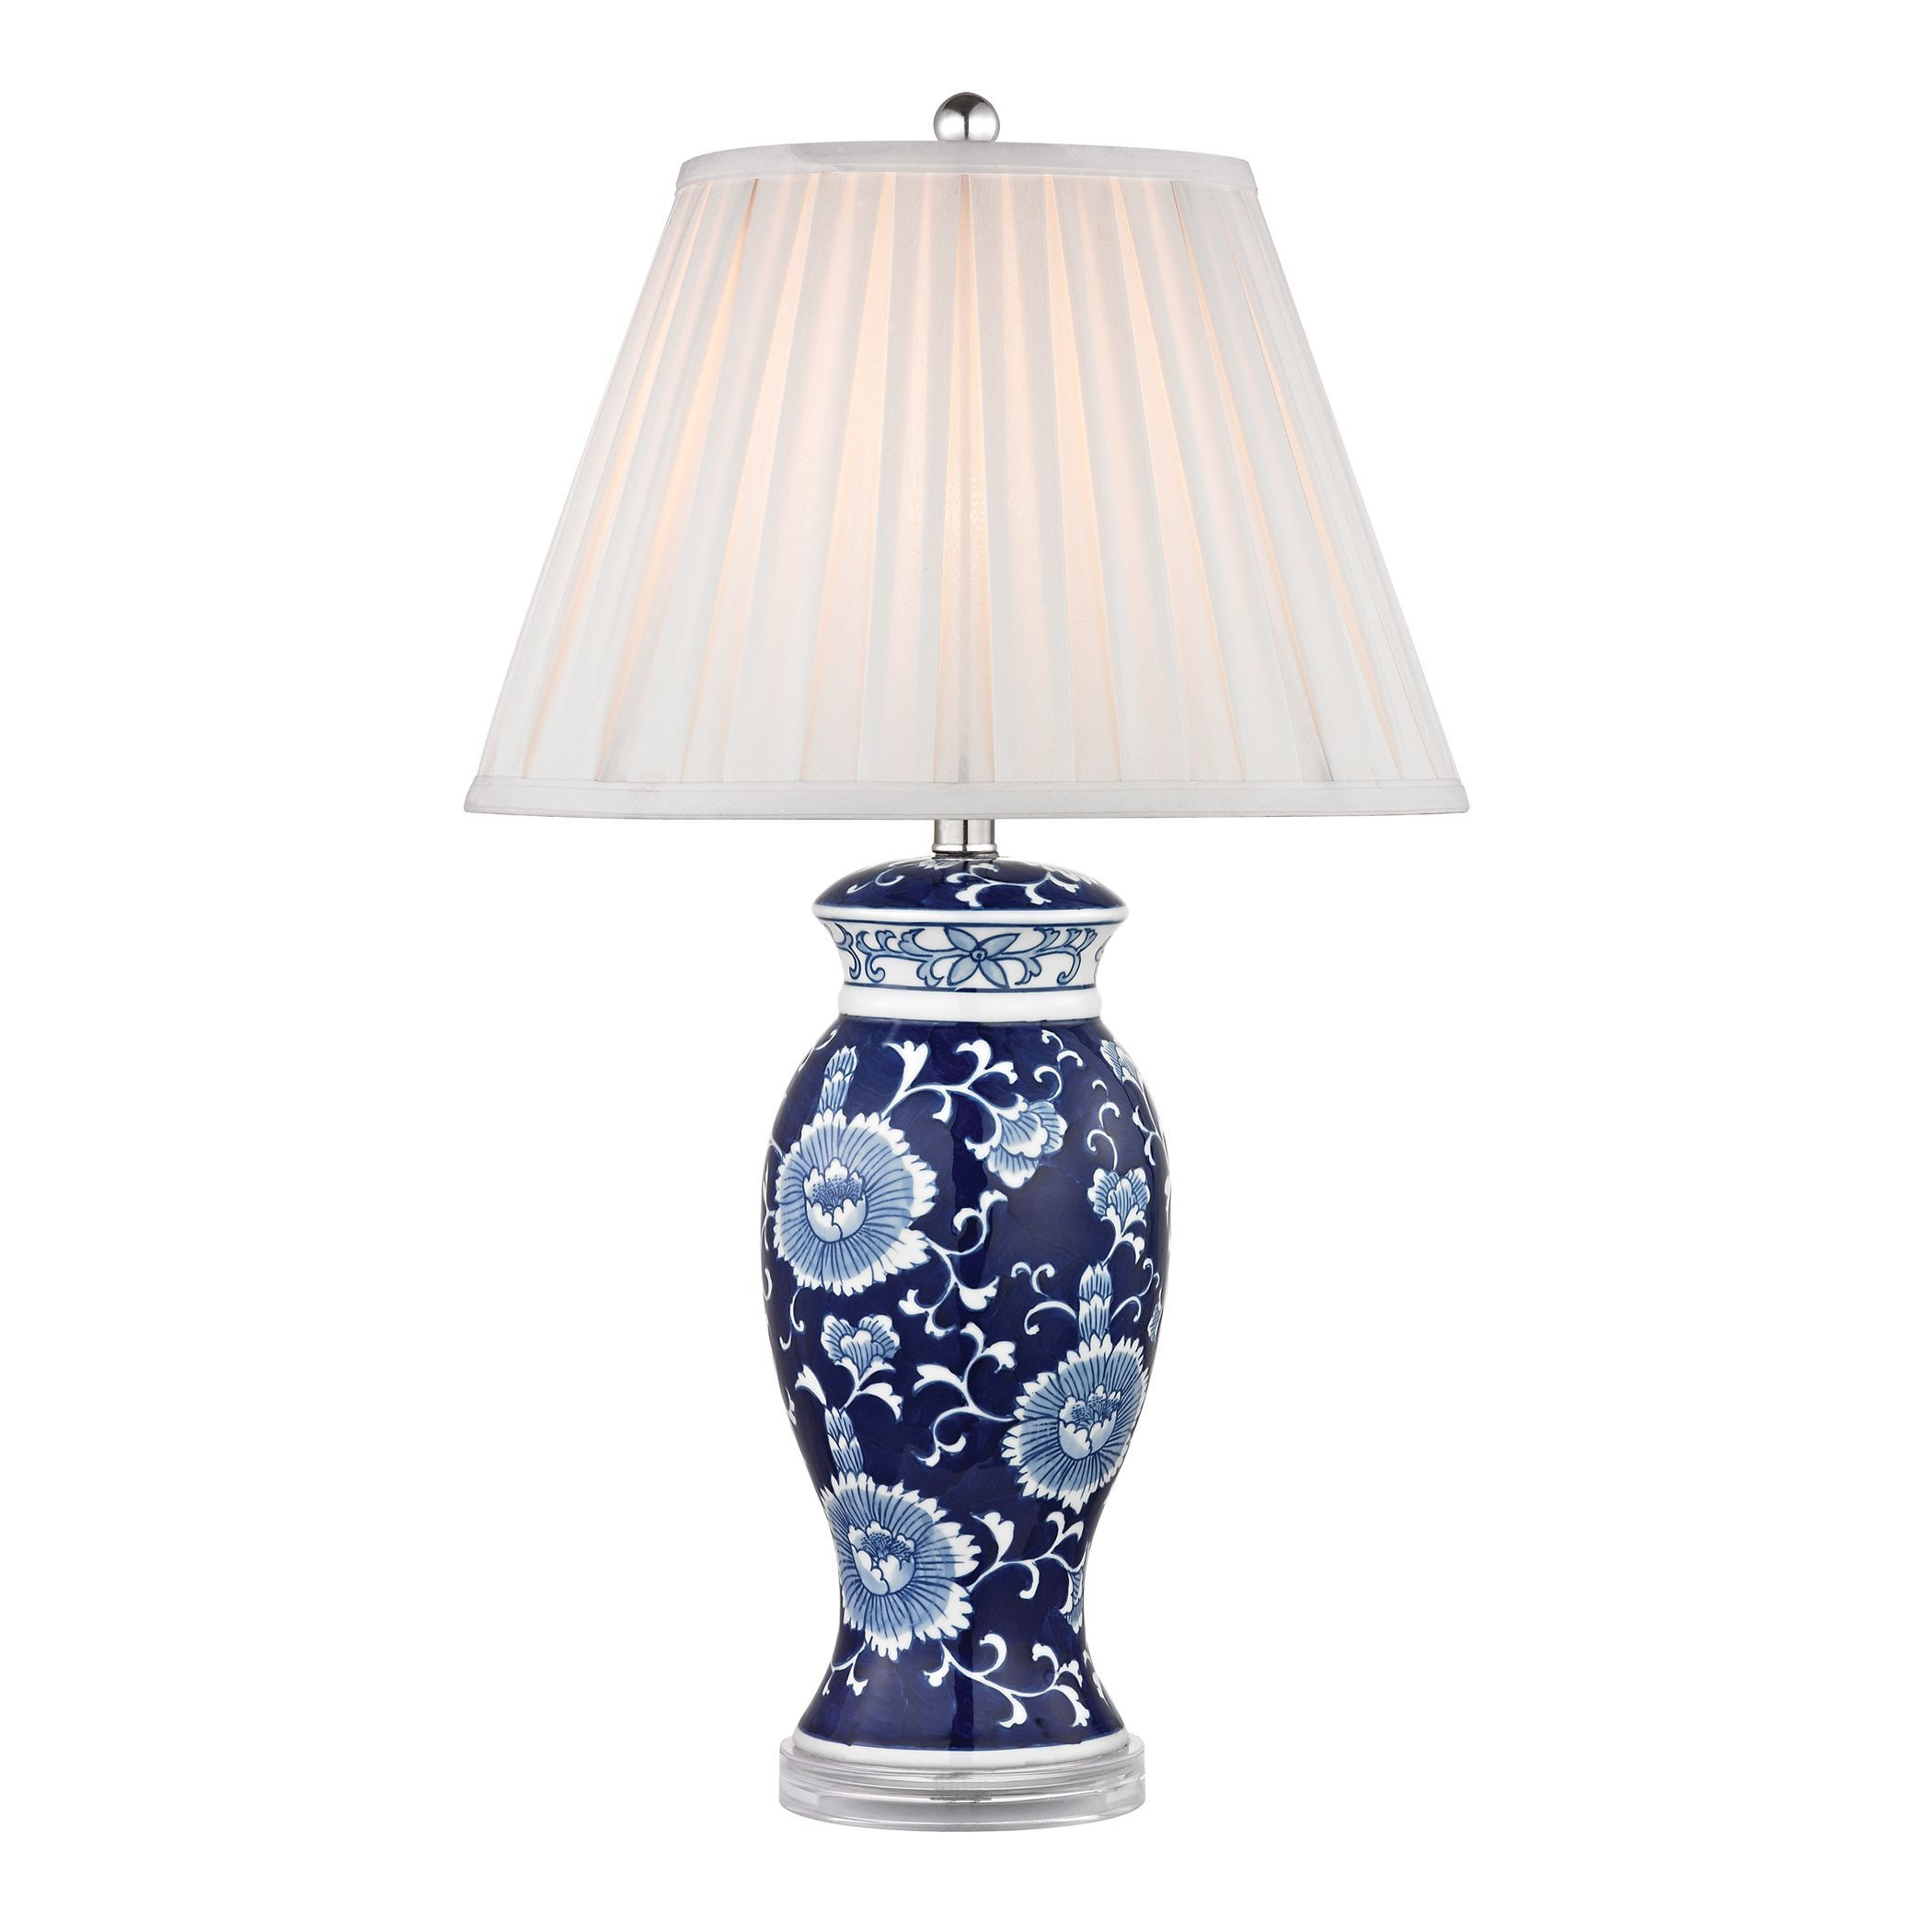 Dimond blue and white 1 light hand painted ceramic table lamp 95 dimond blue and white 1 light hand painted ceramic table lamp 95 watt dimmable led included geotapseo Gallery